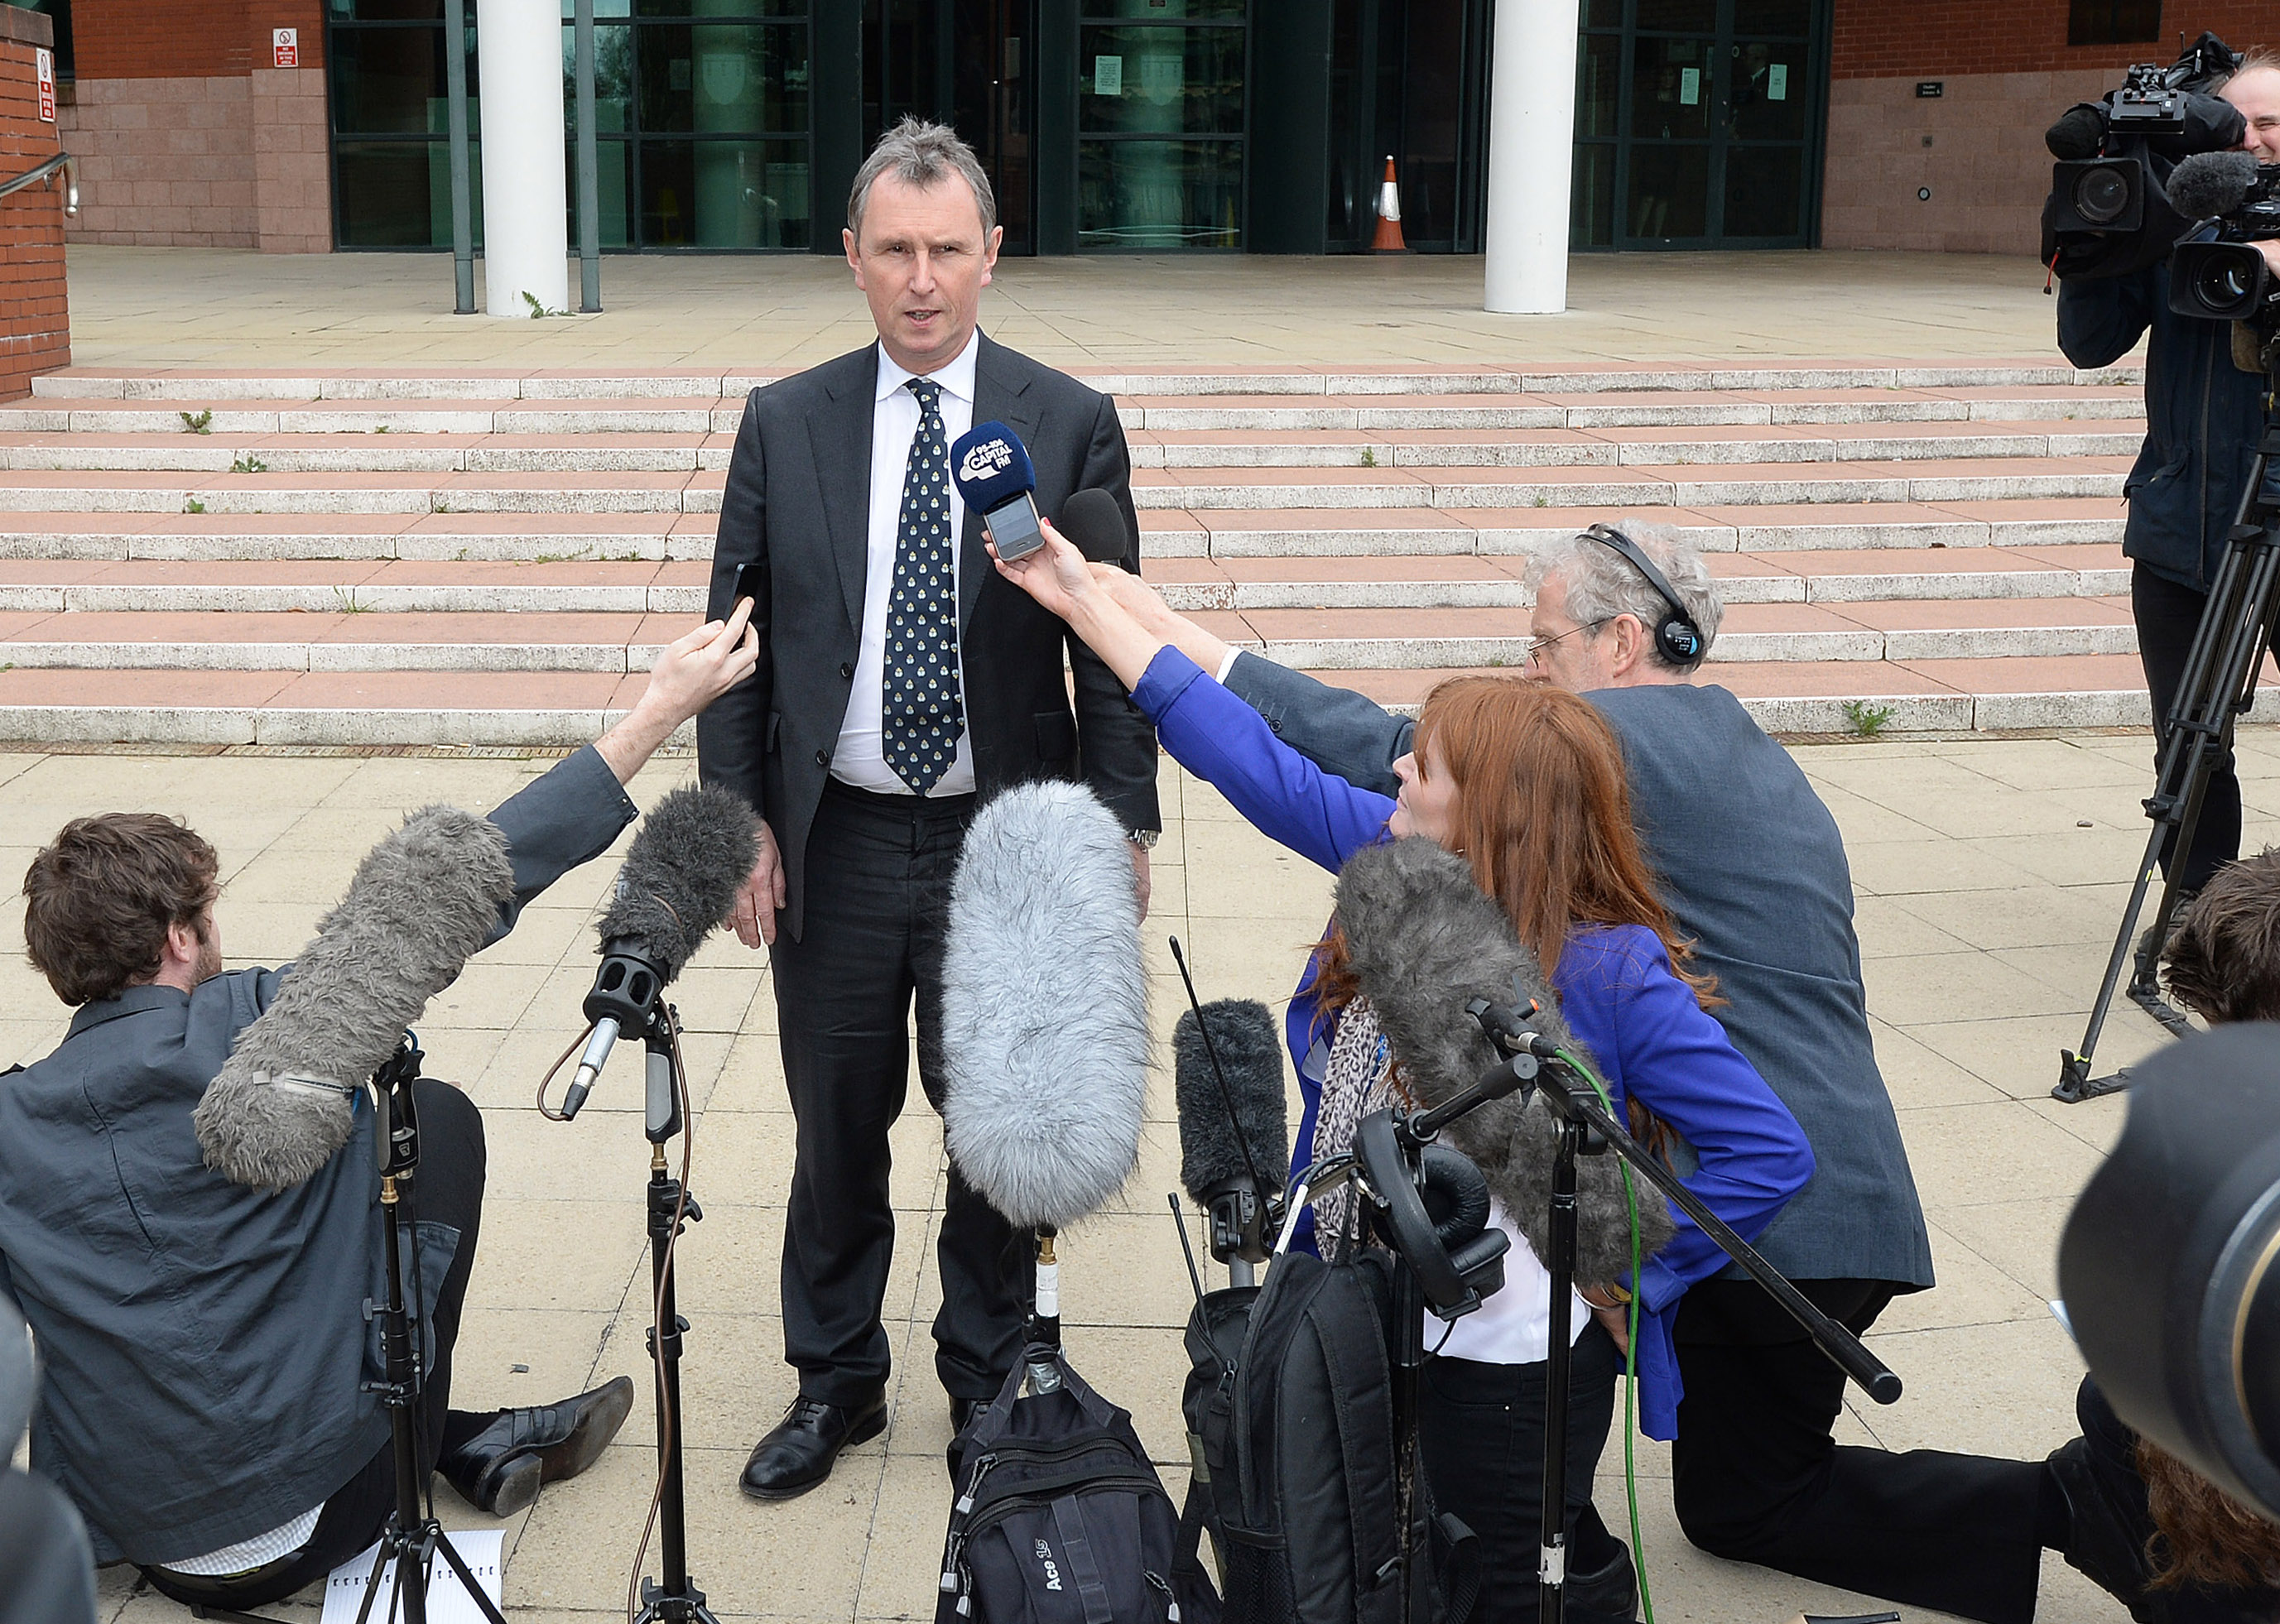 FILE - Former deputy speaker of the House of Commons Nigel Evans speaks to the media, after the end of his trial, outside Preston Crown Court, northern England, Apr. 10, 2014